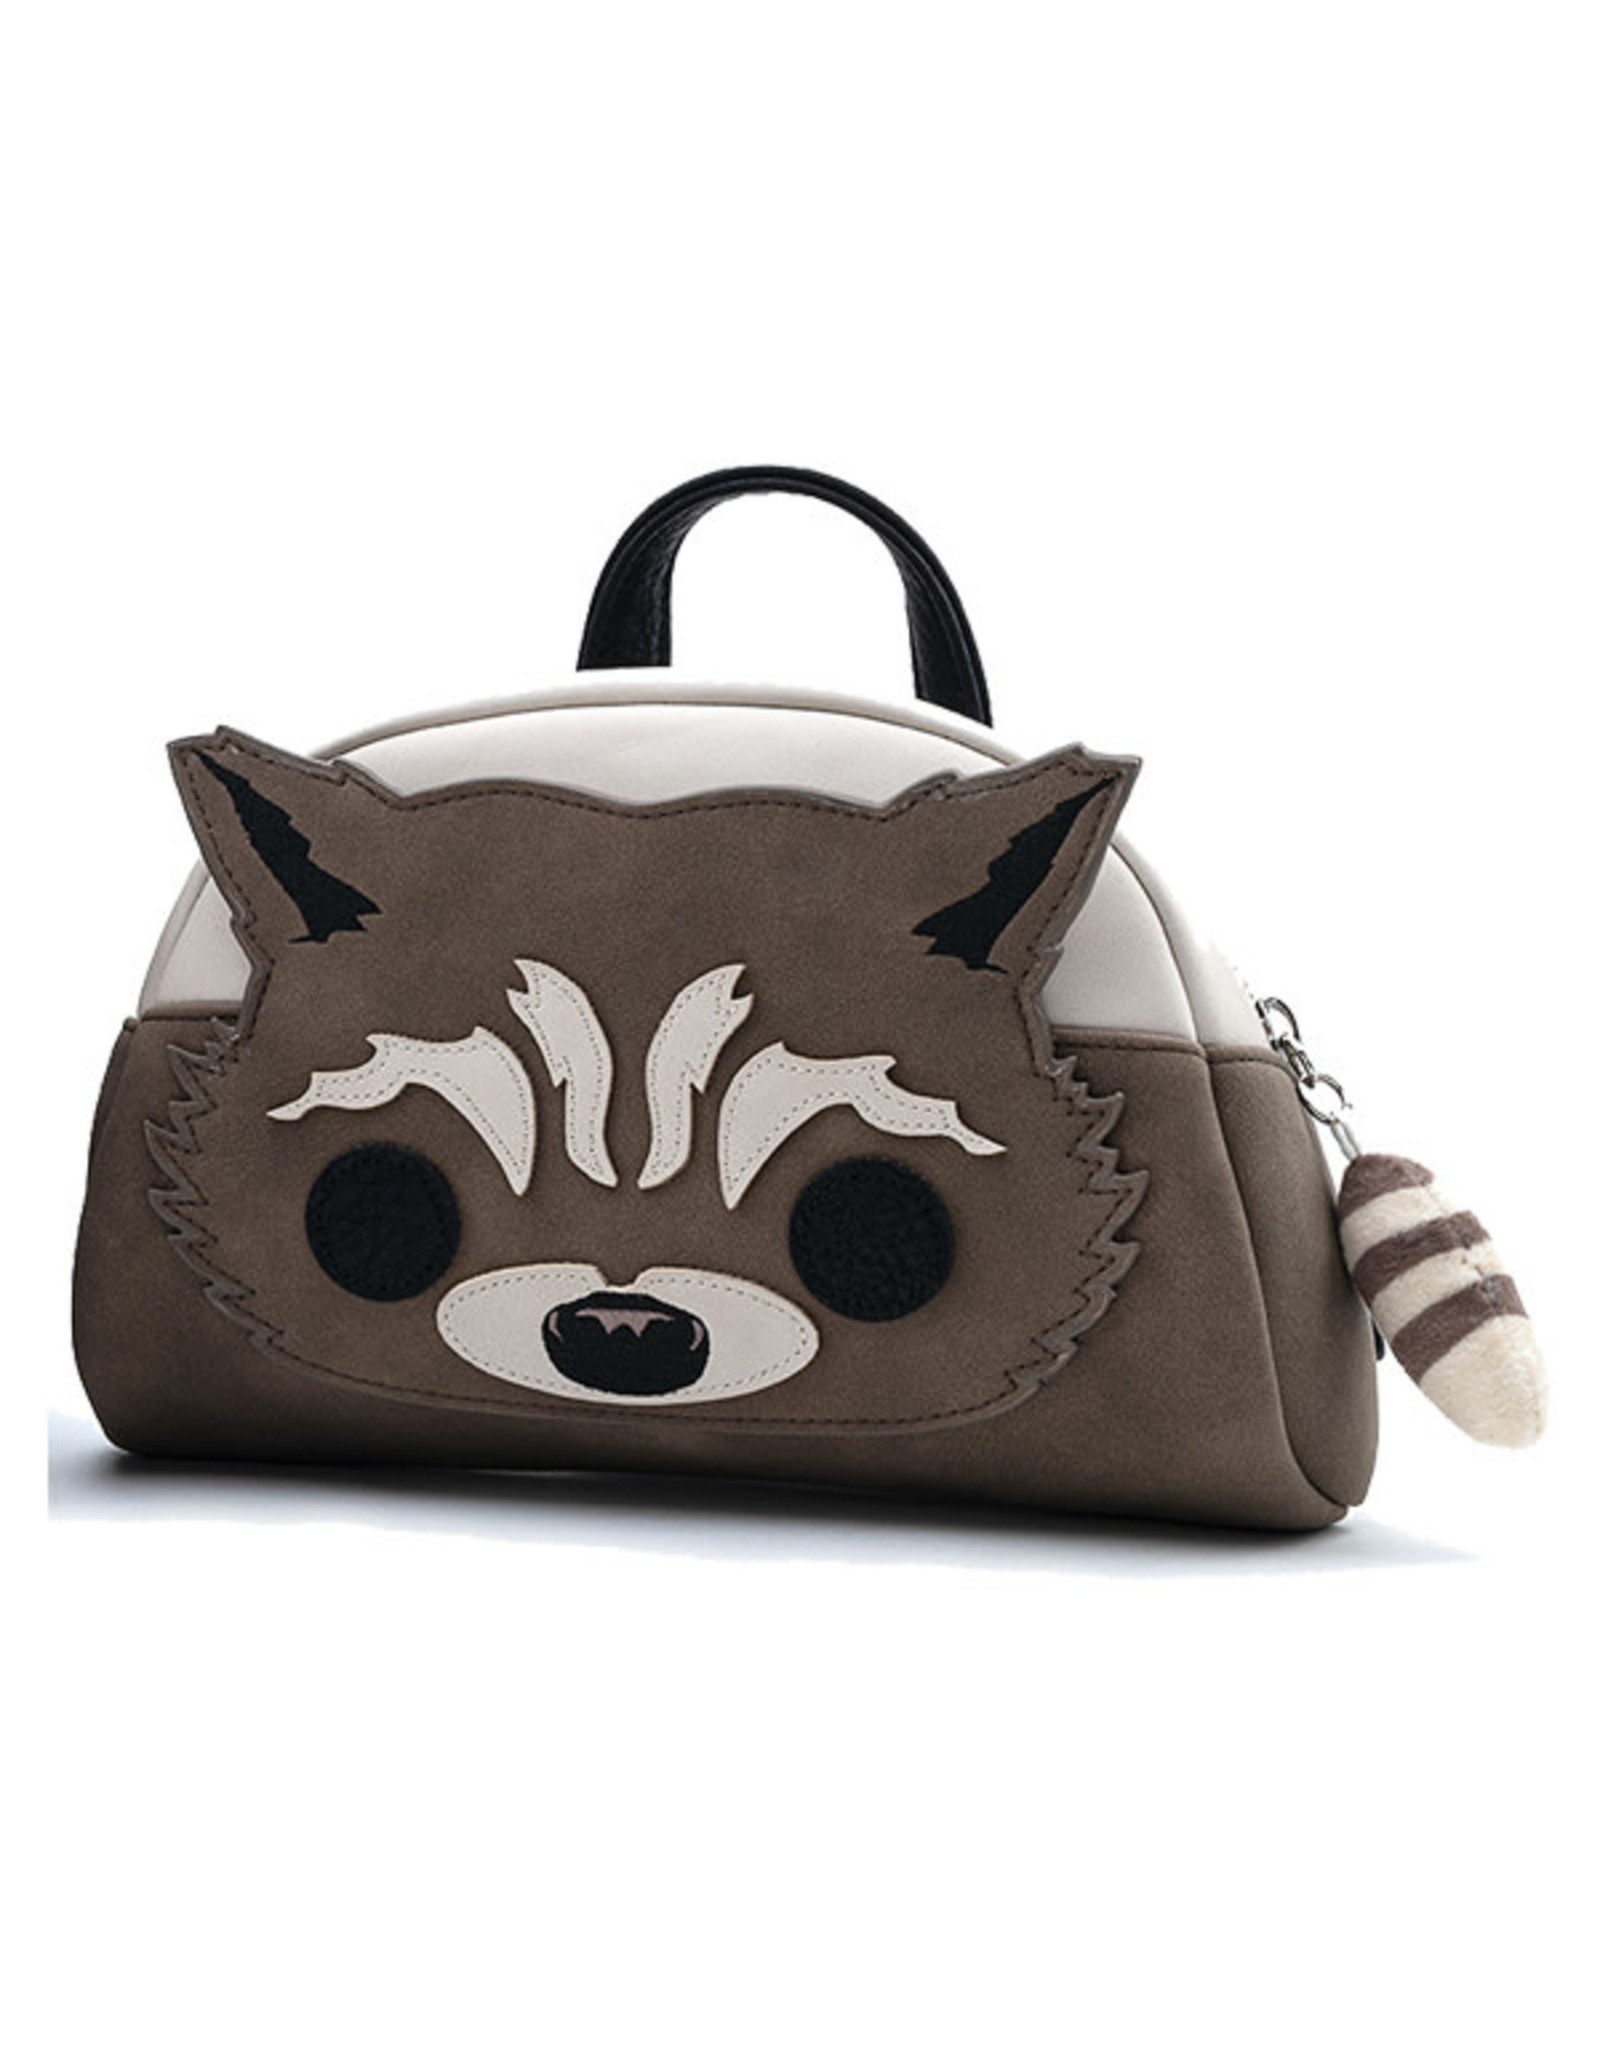 Loungefly GUARDIANS OF THE GALAXY Bum Bag - Rocket